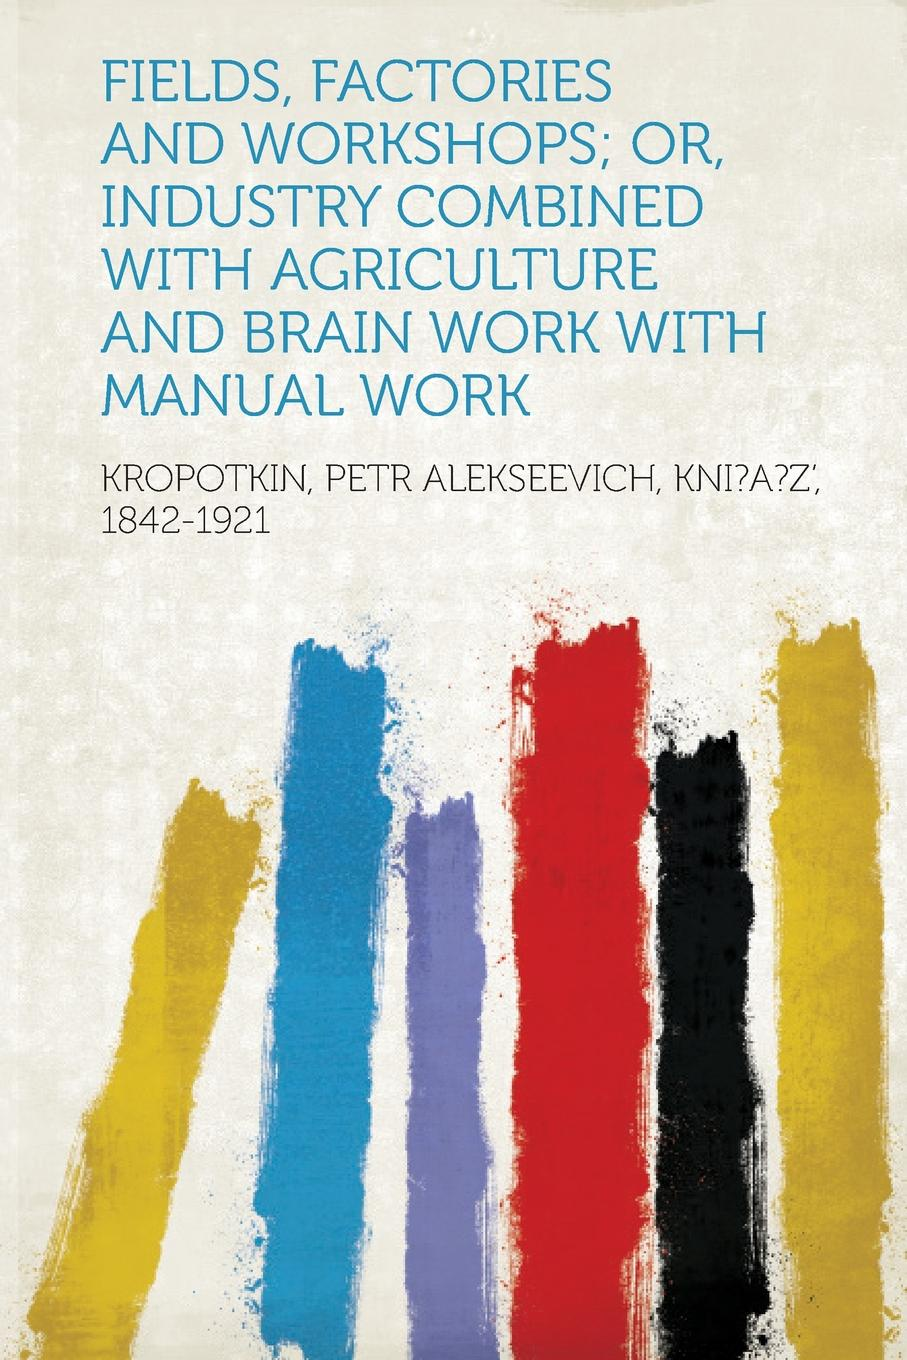 Fields, Factories and Workshops; Or, Industry Combined With Agriculture Brain Work Manual